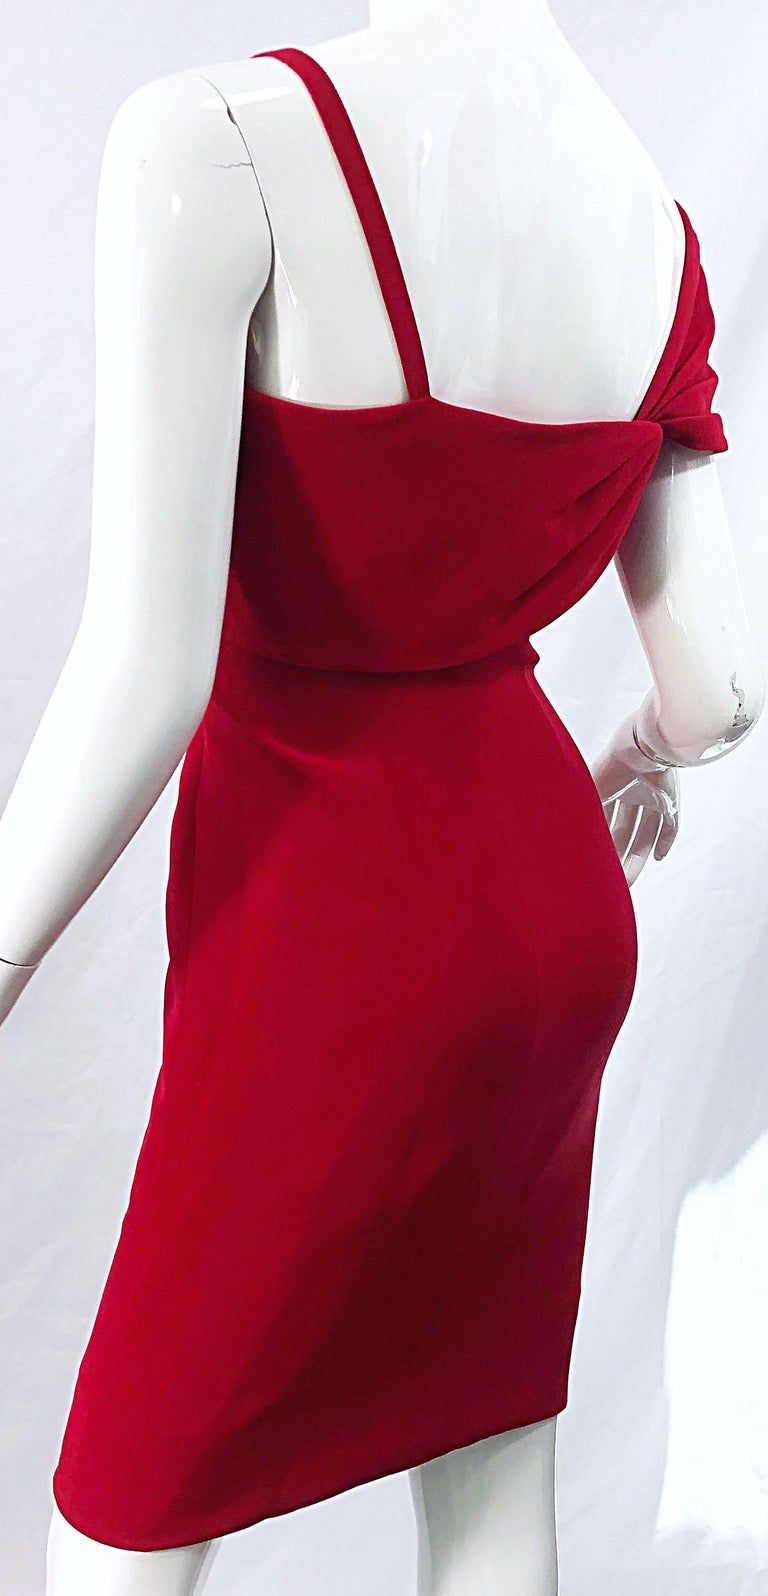 Vintage Bill Blass 1990s Size 6 Lipstick Red One Shoulder 90s Silk Dress For Sale 1